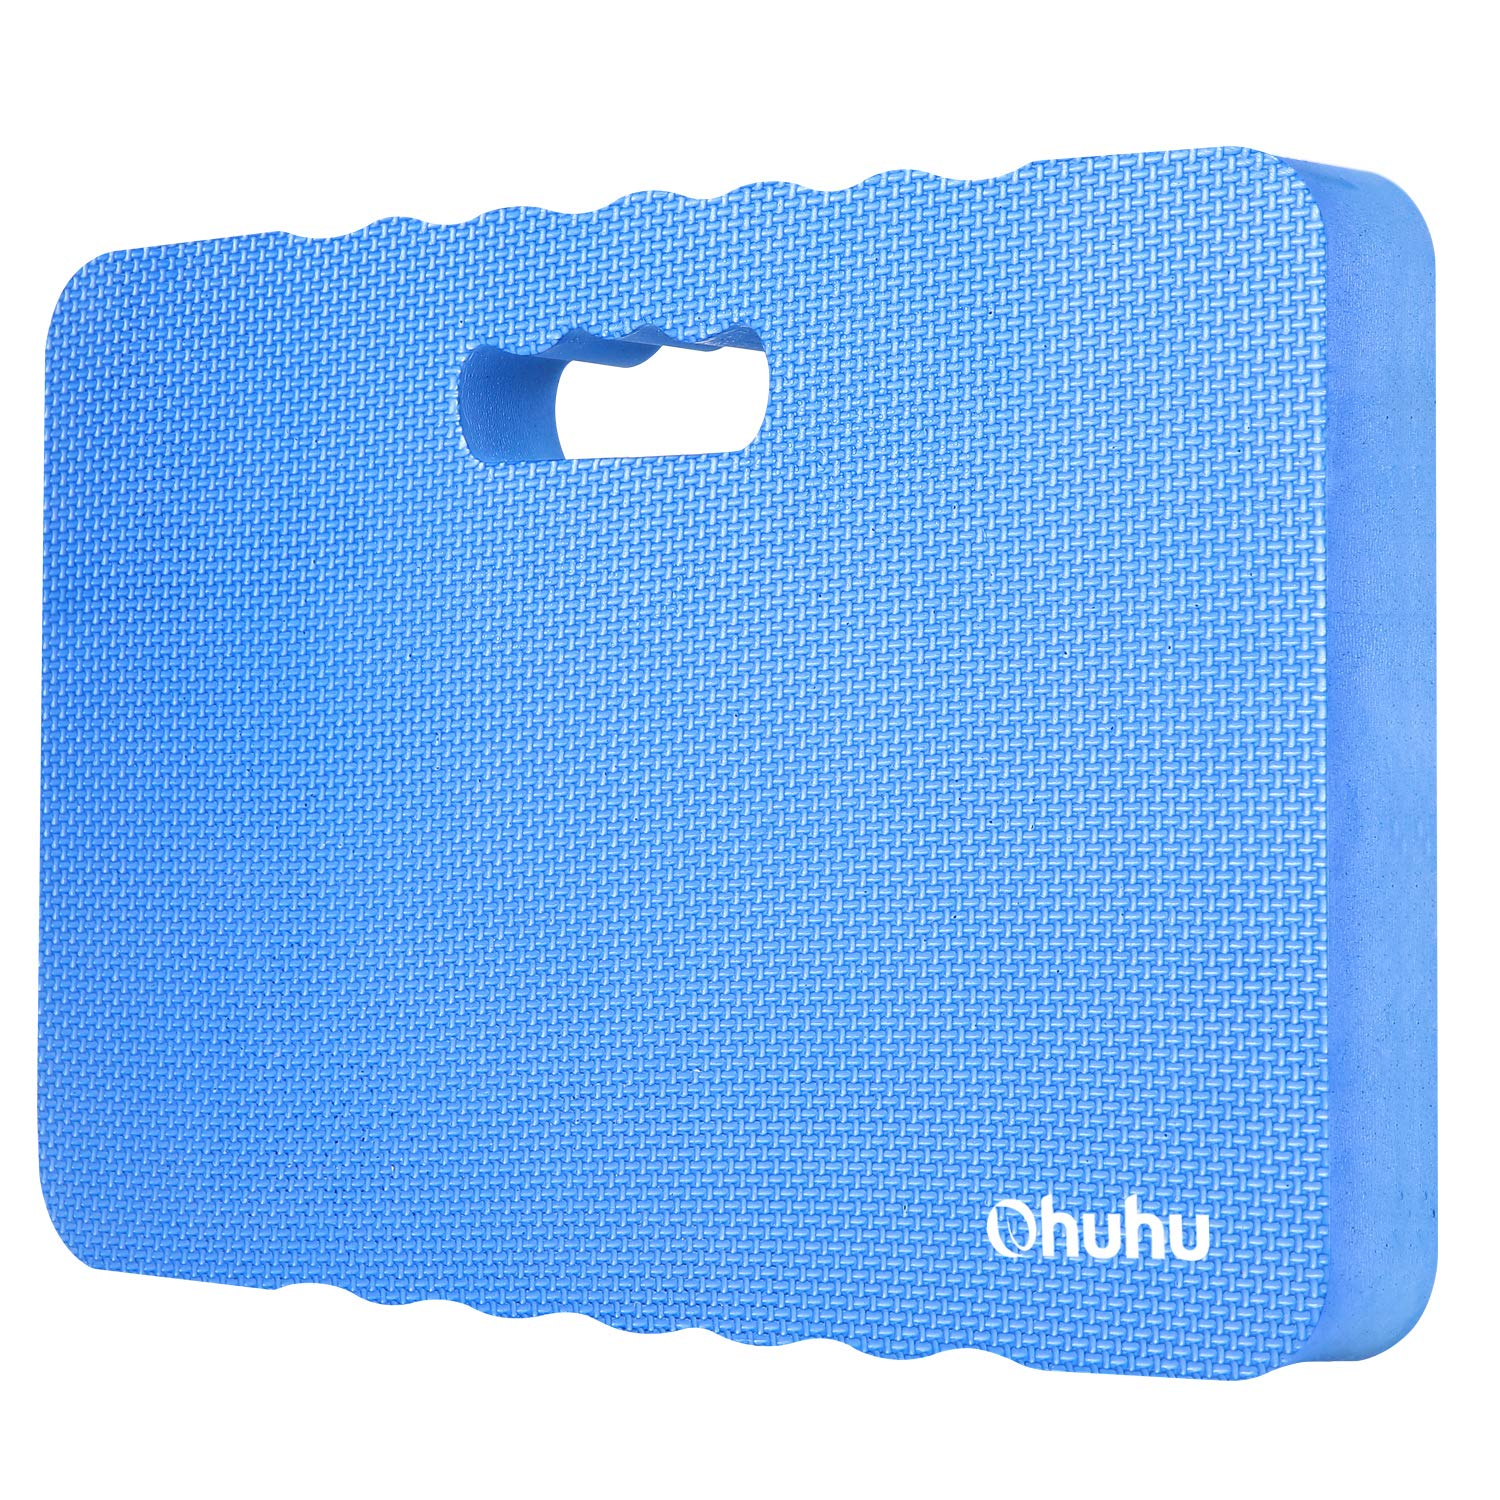 Premium Thick Kneeling Pad Ohuhu Kne Max 47% OFF Gardening Large Foam Sales of SALE items from new works Comfy